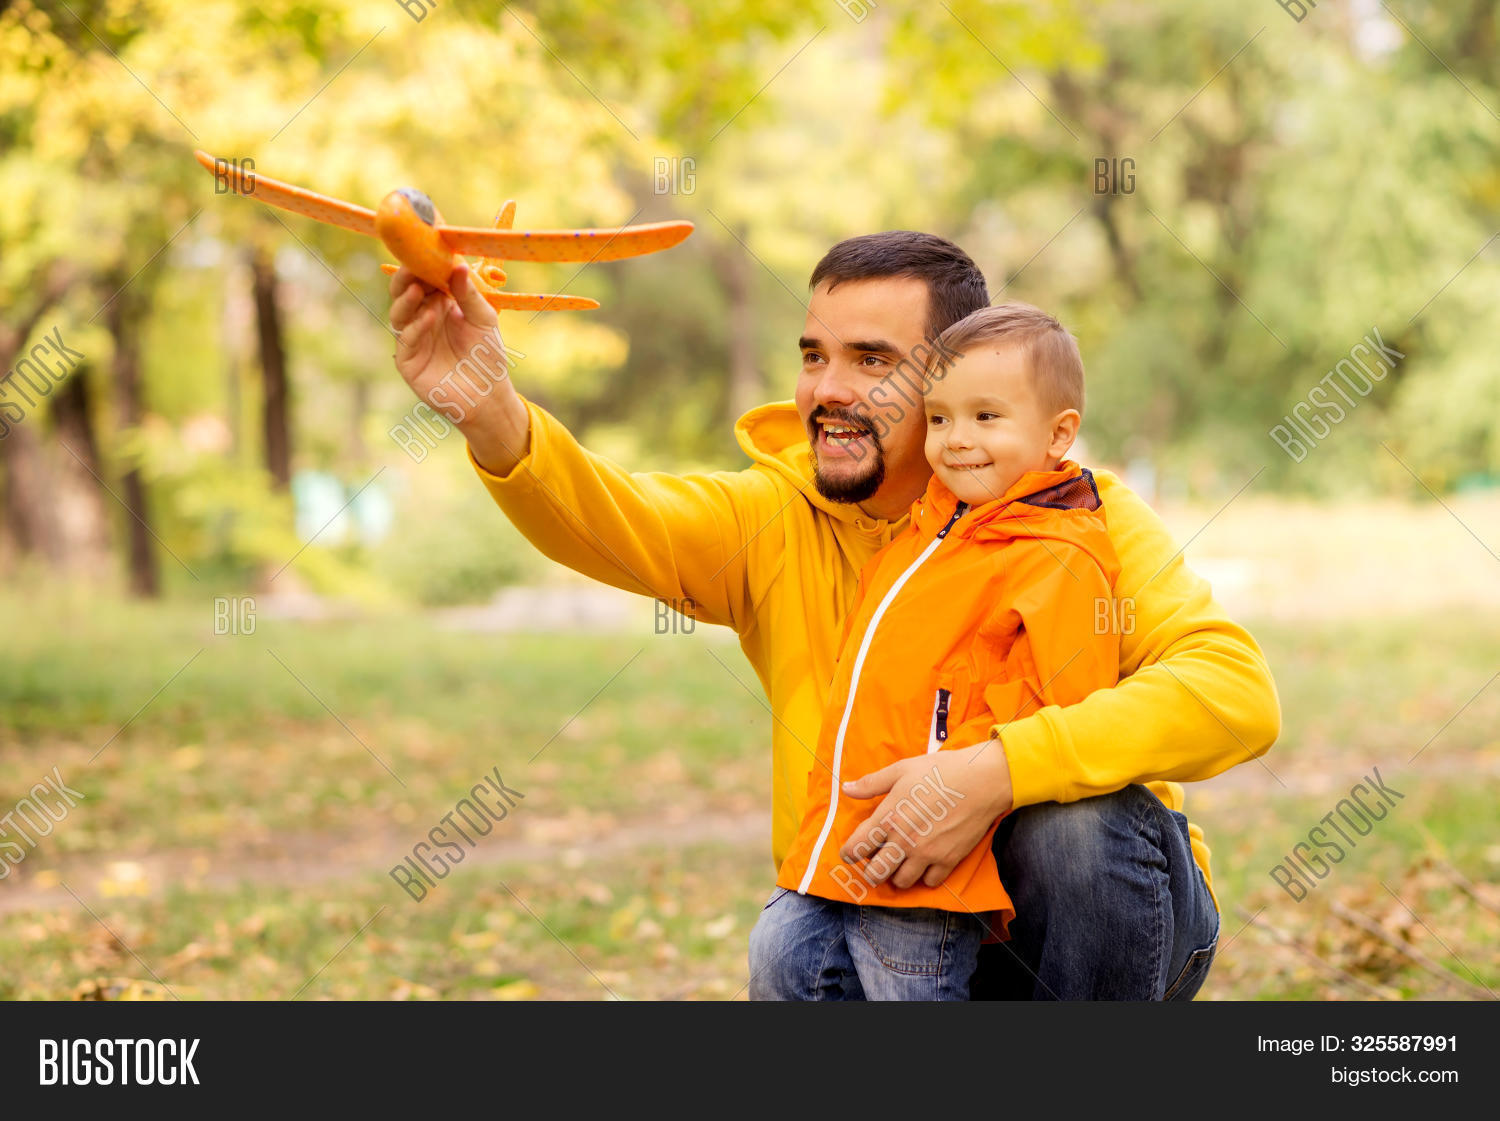 active,aircraft,airplane,asian,autumn,background,boy,caucasian,child,childhood,dad,daddy,embrace,family,father,fly,forest,fun,game,golden,good,happiness,happy,having,holding,joy,kid,latino,launch,leisure,little,middle-aged,orange,outdoors,parenting,park,plane,play,smile,son,spending,time,toddler,together,toy,travel,trees,vacation,yellow,young